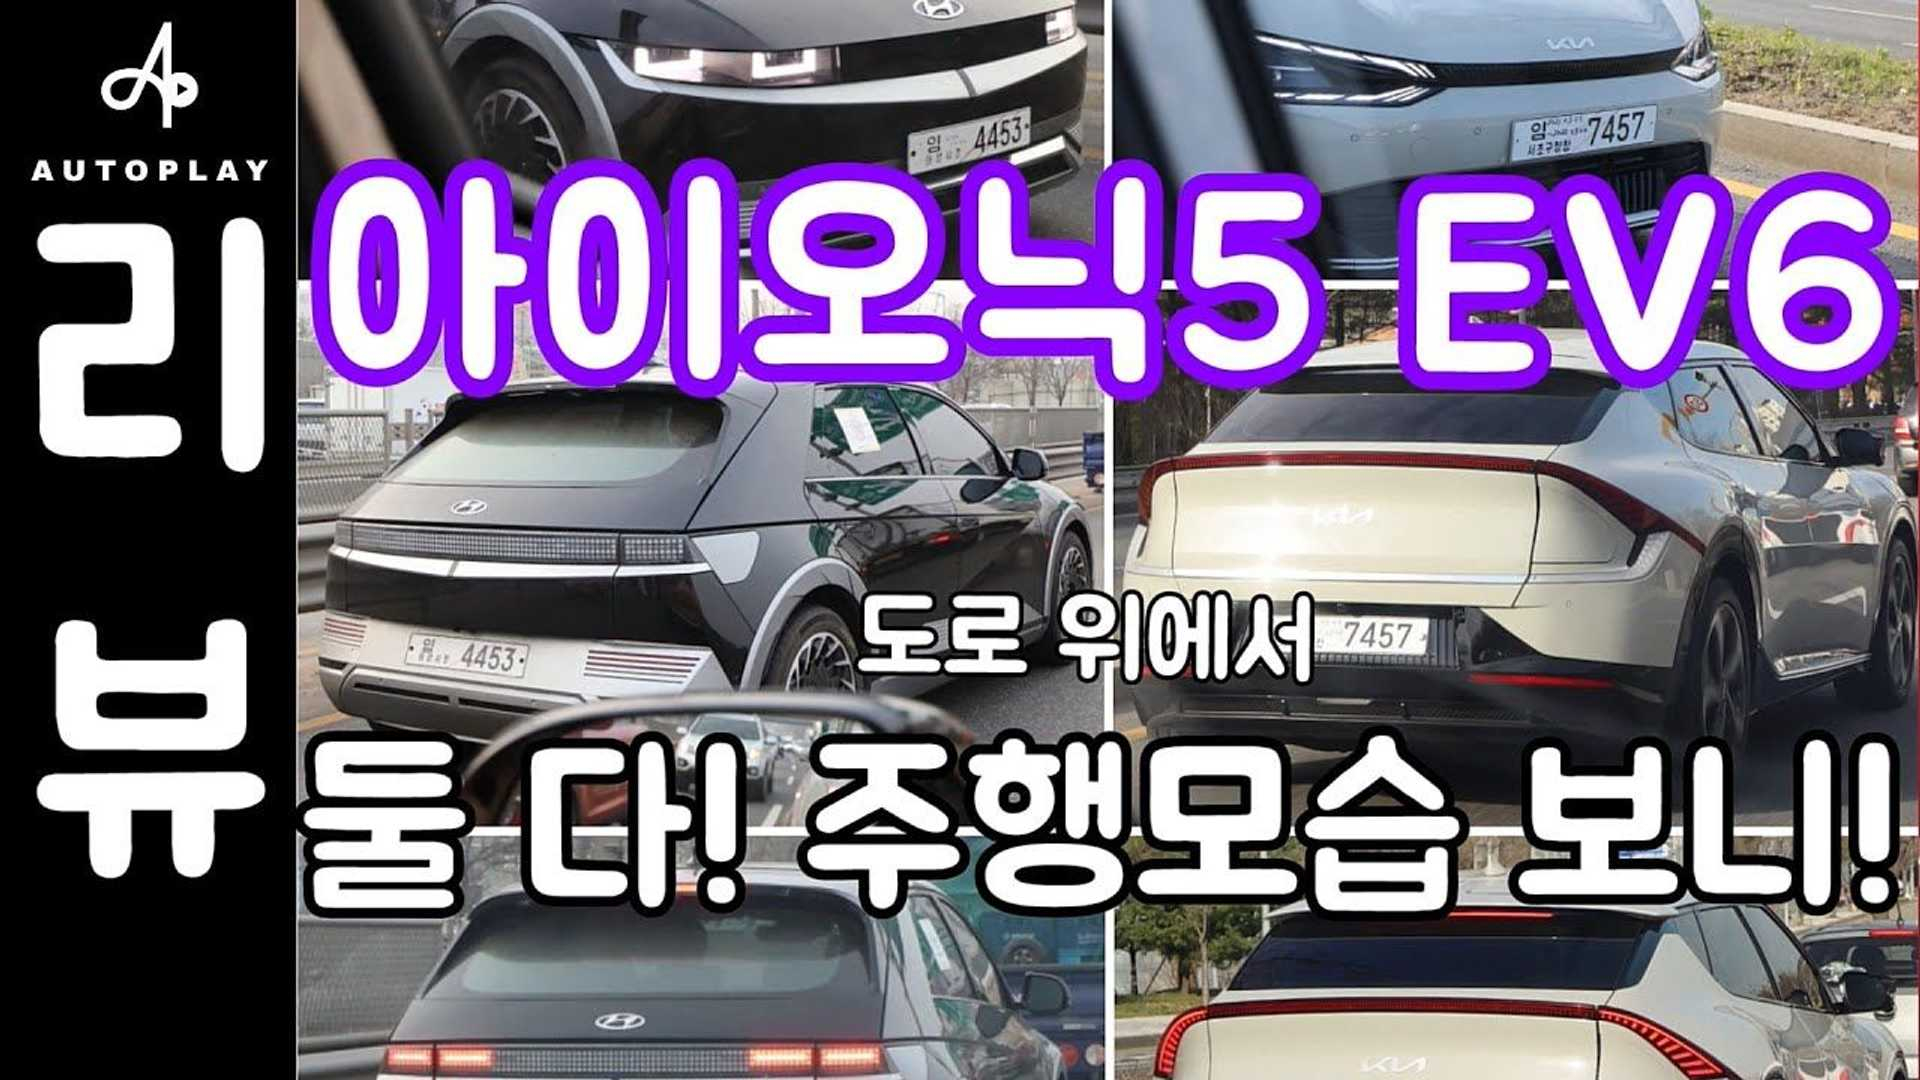 Check out the Kia EV6 and Hyundai Ioniq 5 while driving in South Korea